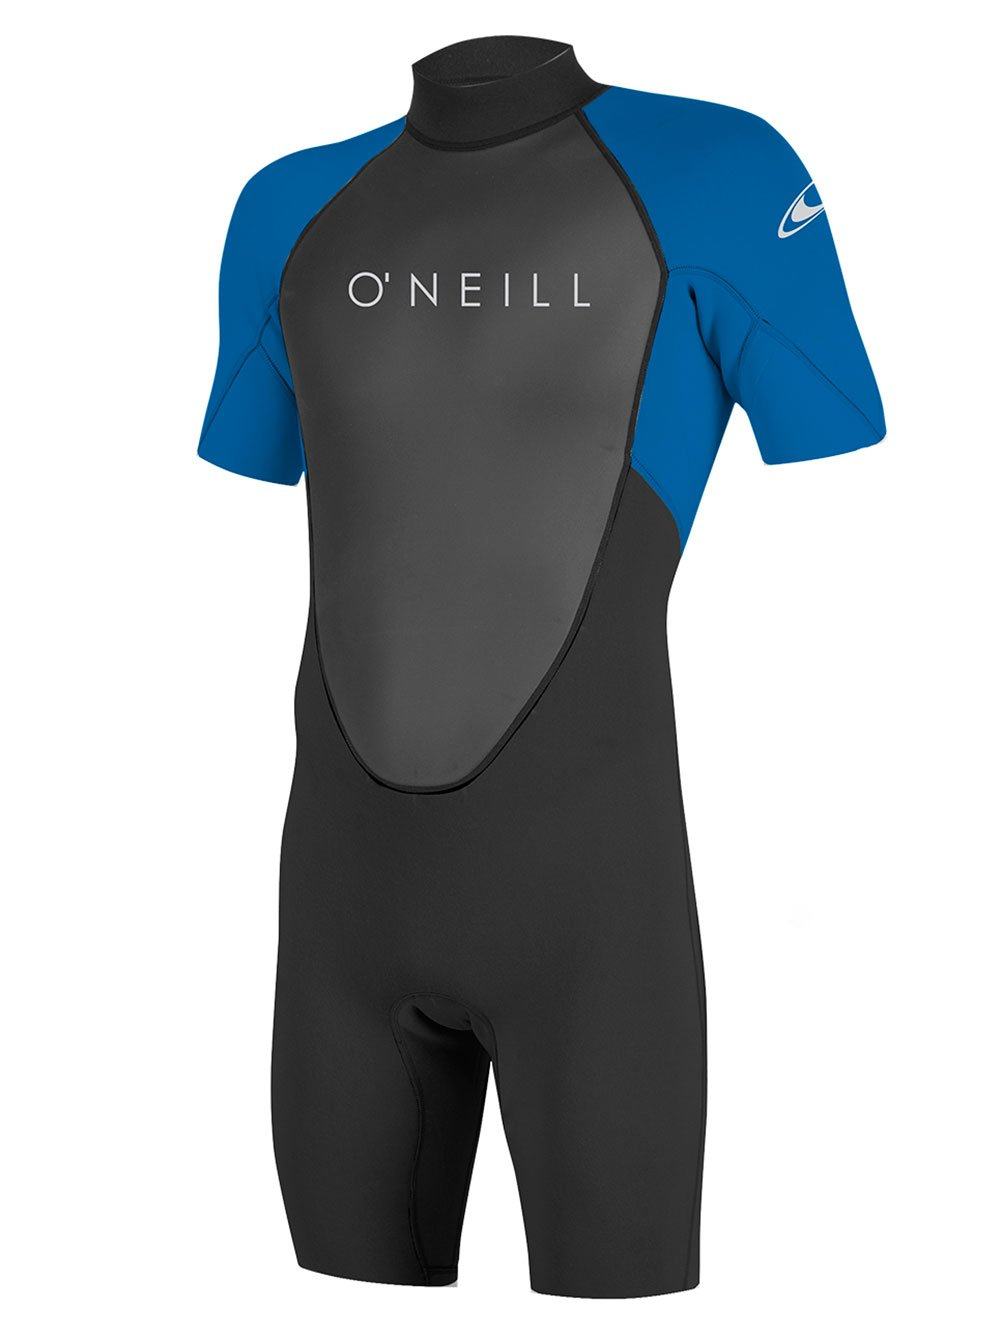 O'Neill Men's Reactor-2 2mm Back Zip Short Sleeve Spring Wetsuit, Black/Ocean, Large Tall by O'Neill Wetsuits